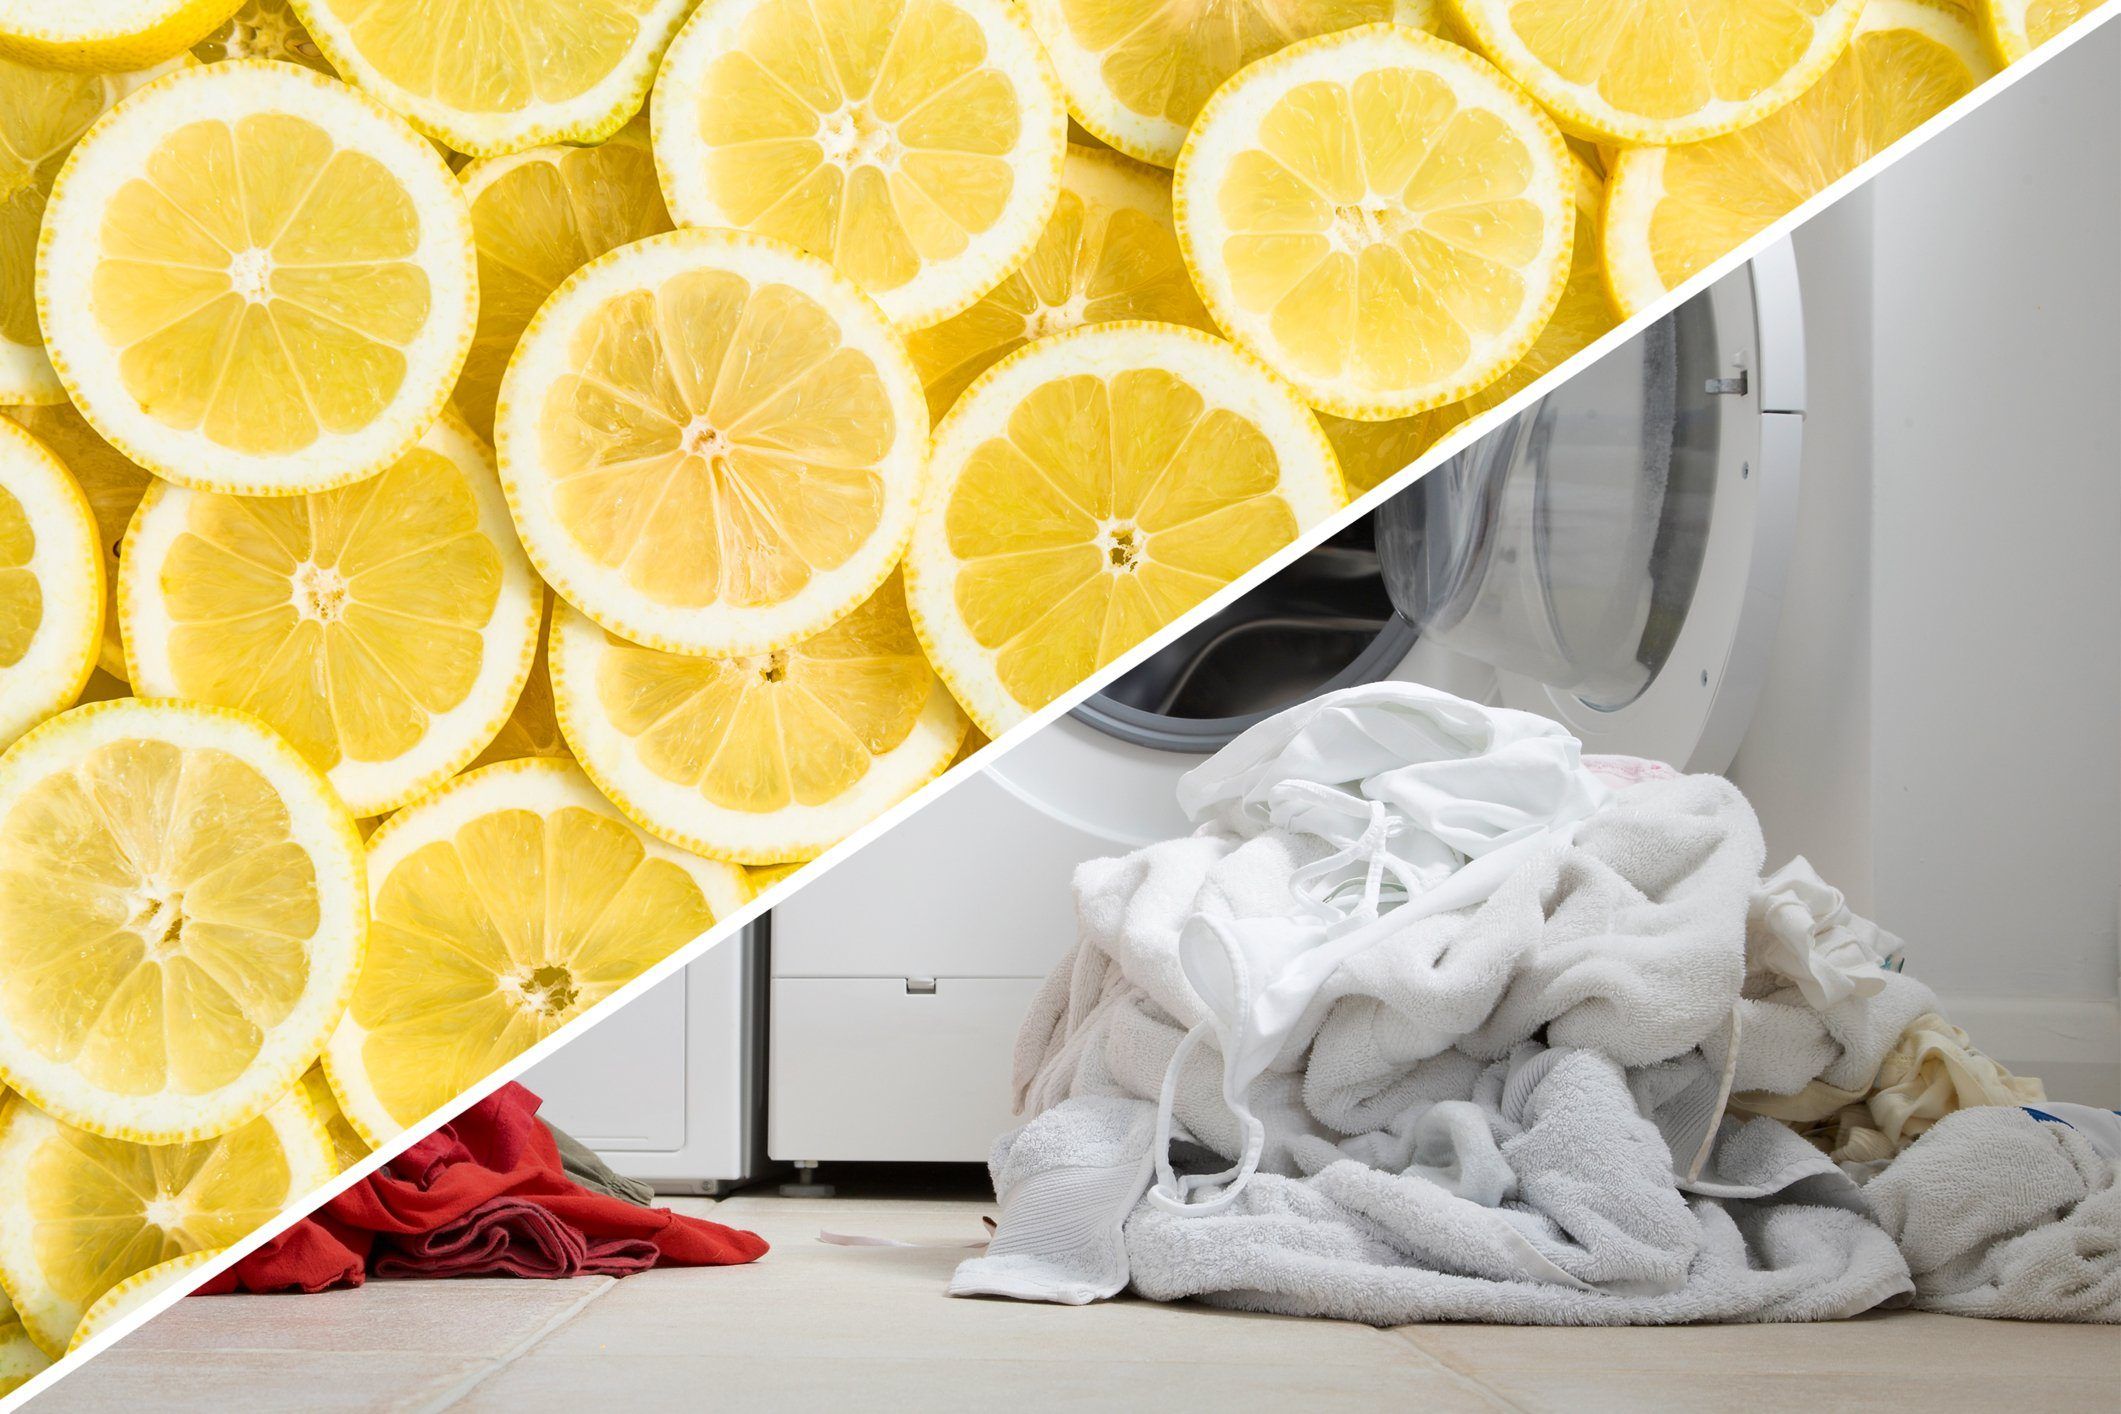 bleach laundry lemon cleaner